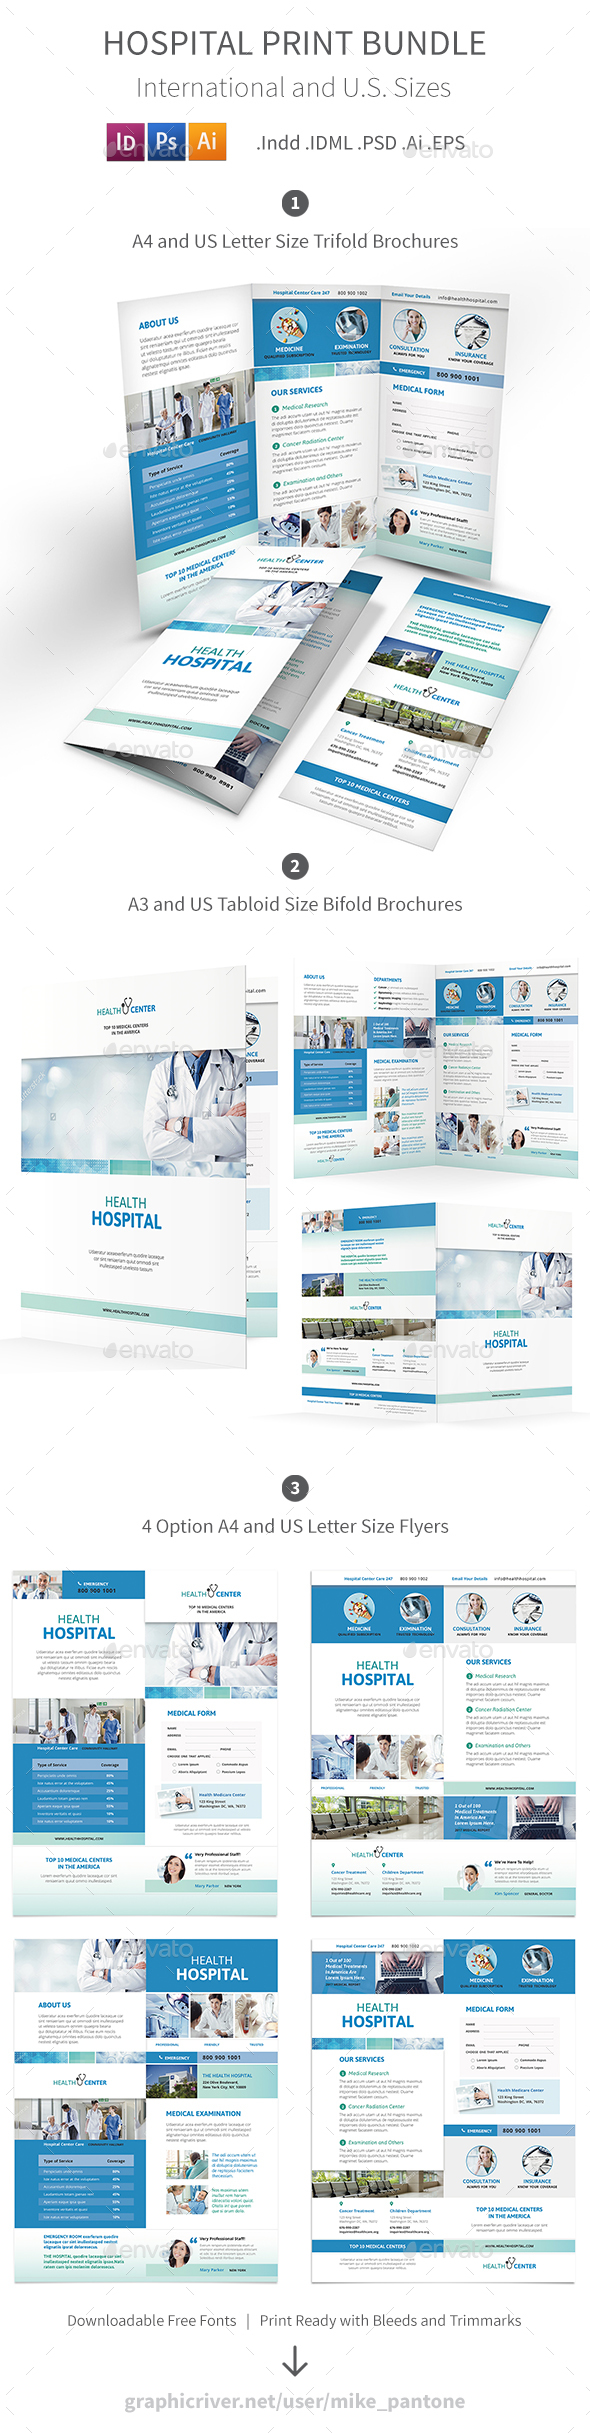 Hospital Print Bundle - Informational Brochures